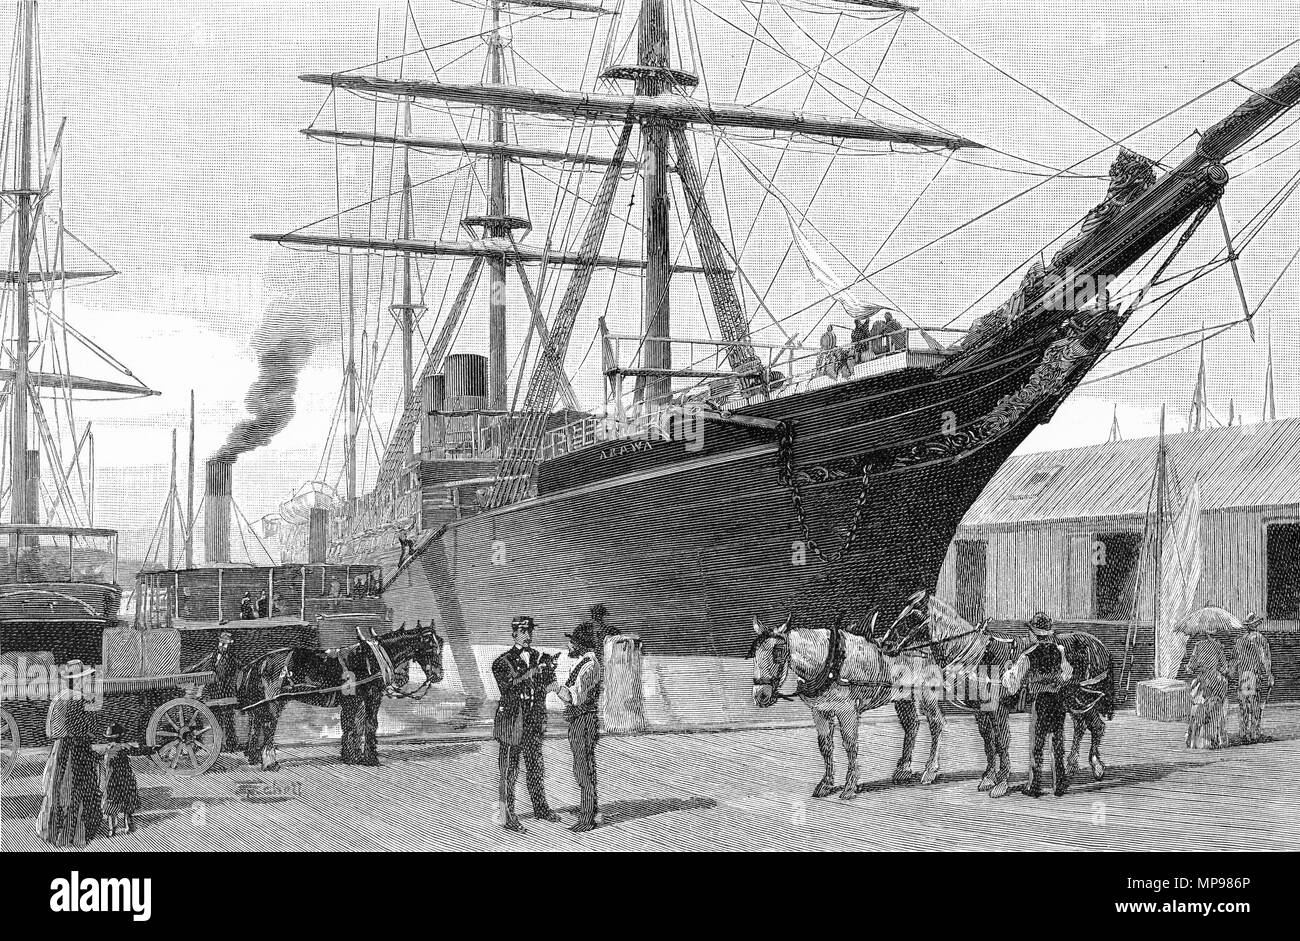 Engraving of wharfies loading frozen mutton at Queen's Wharf, Auckland circa 1880, New Zealand. From the Picturesque Atlas of Australasia Vol 3, 1886 - Stock Image